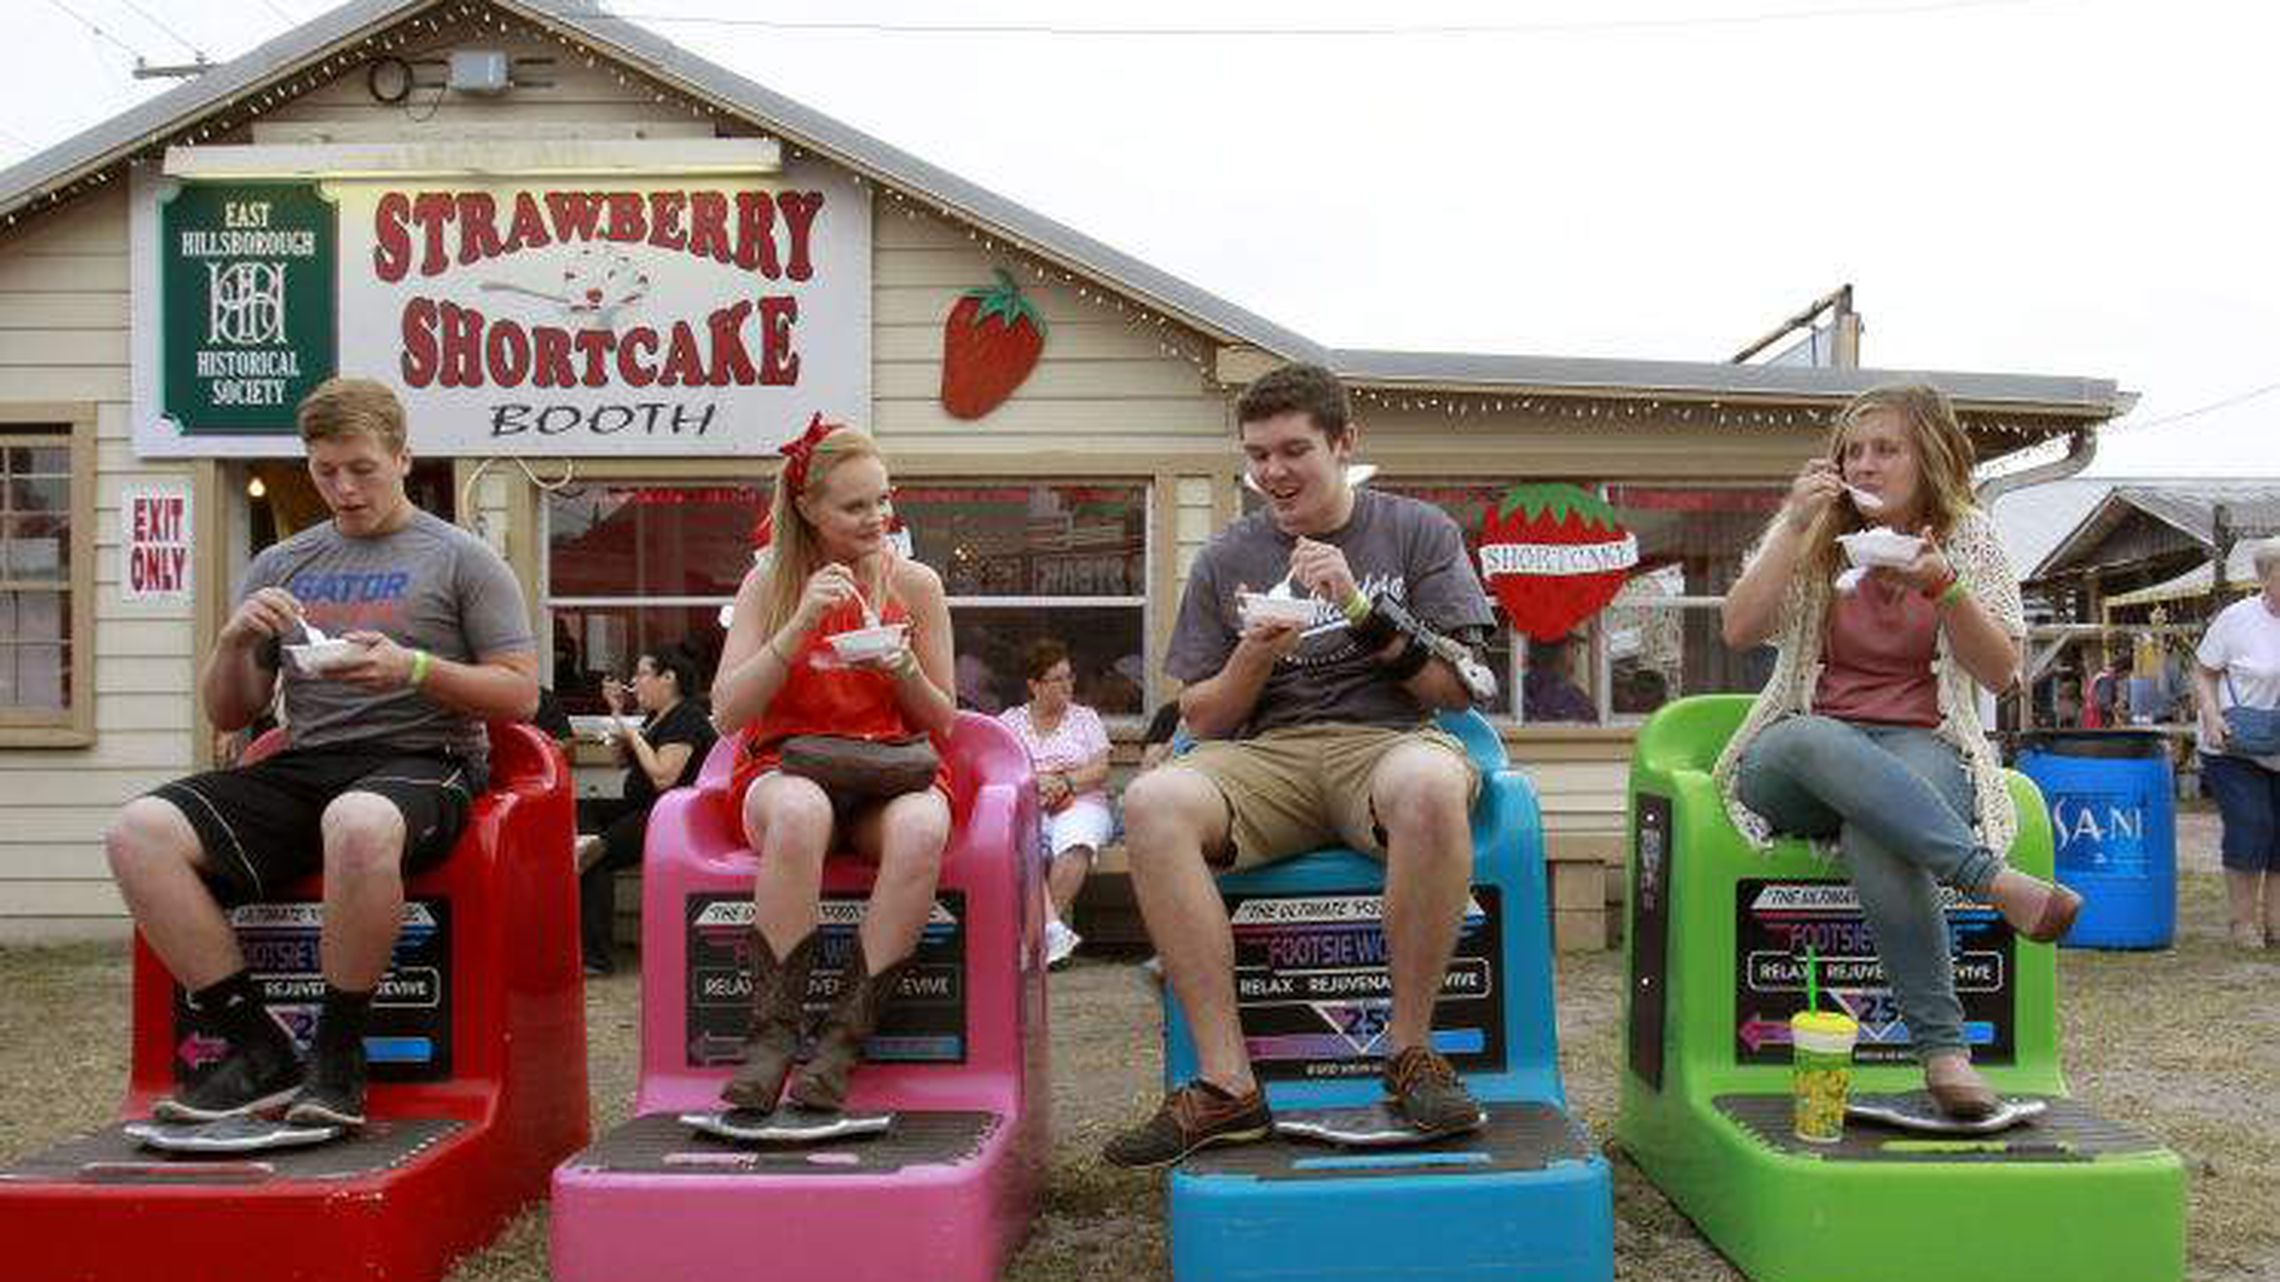 Top things to do in Tampa Bay: Feb. 24-March 1